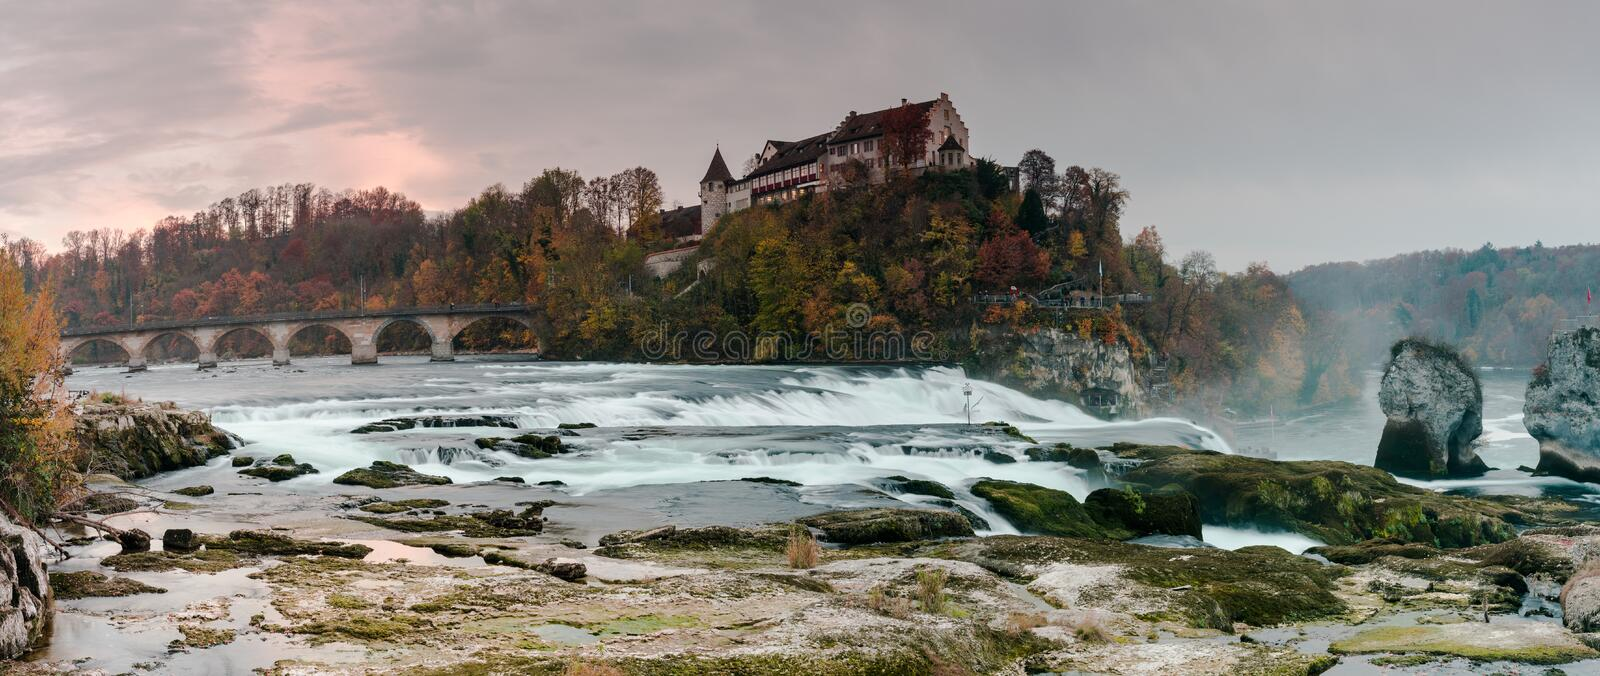 Nightfall and dusk on the Rhine Falls and Rhine River with an illuminated castle building on the water royalty free stock photo